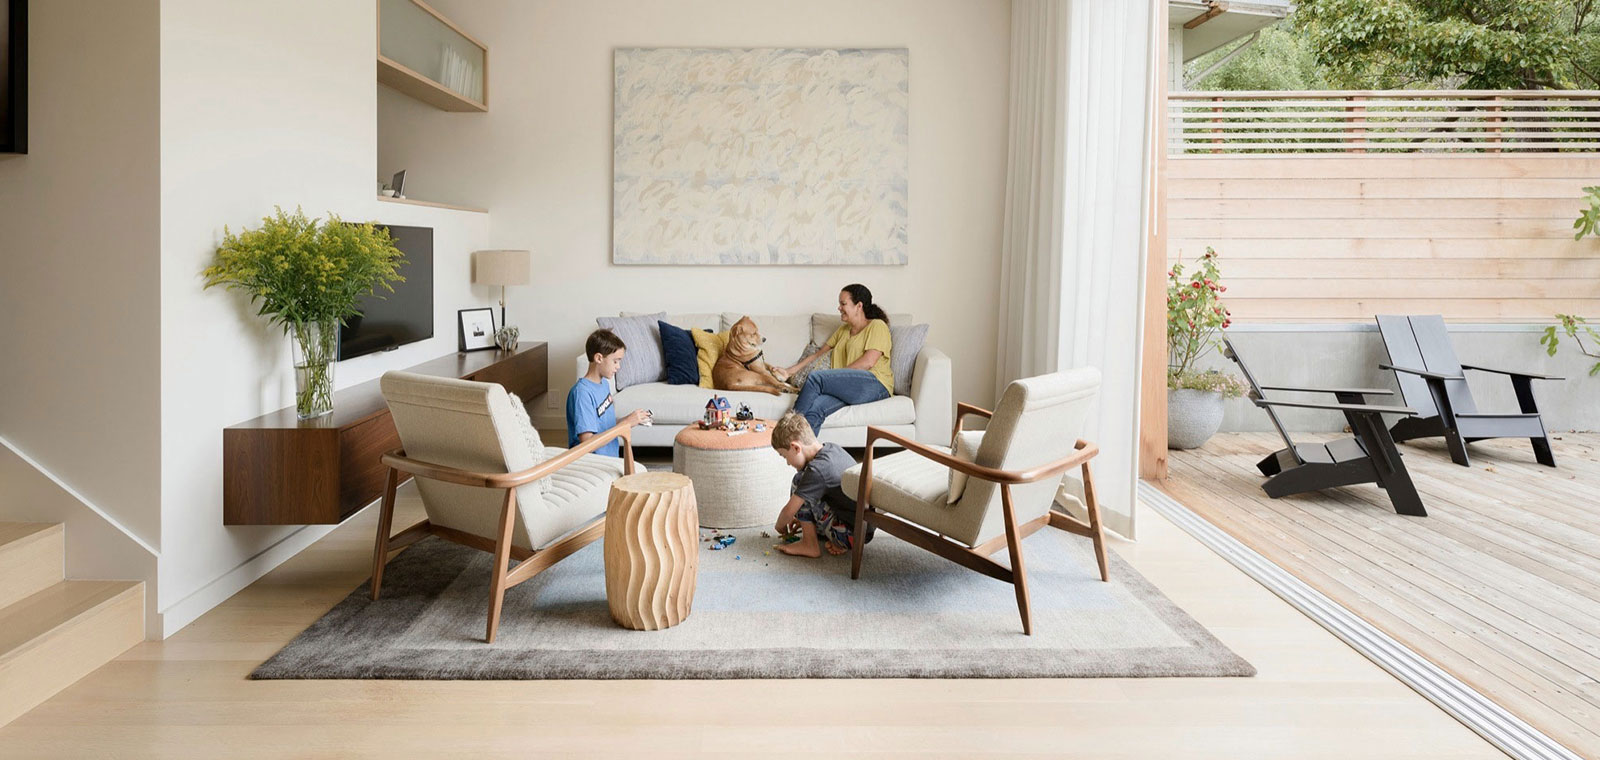 An unconventional home renovation for a playful young family